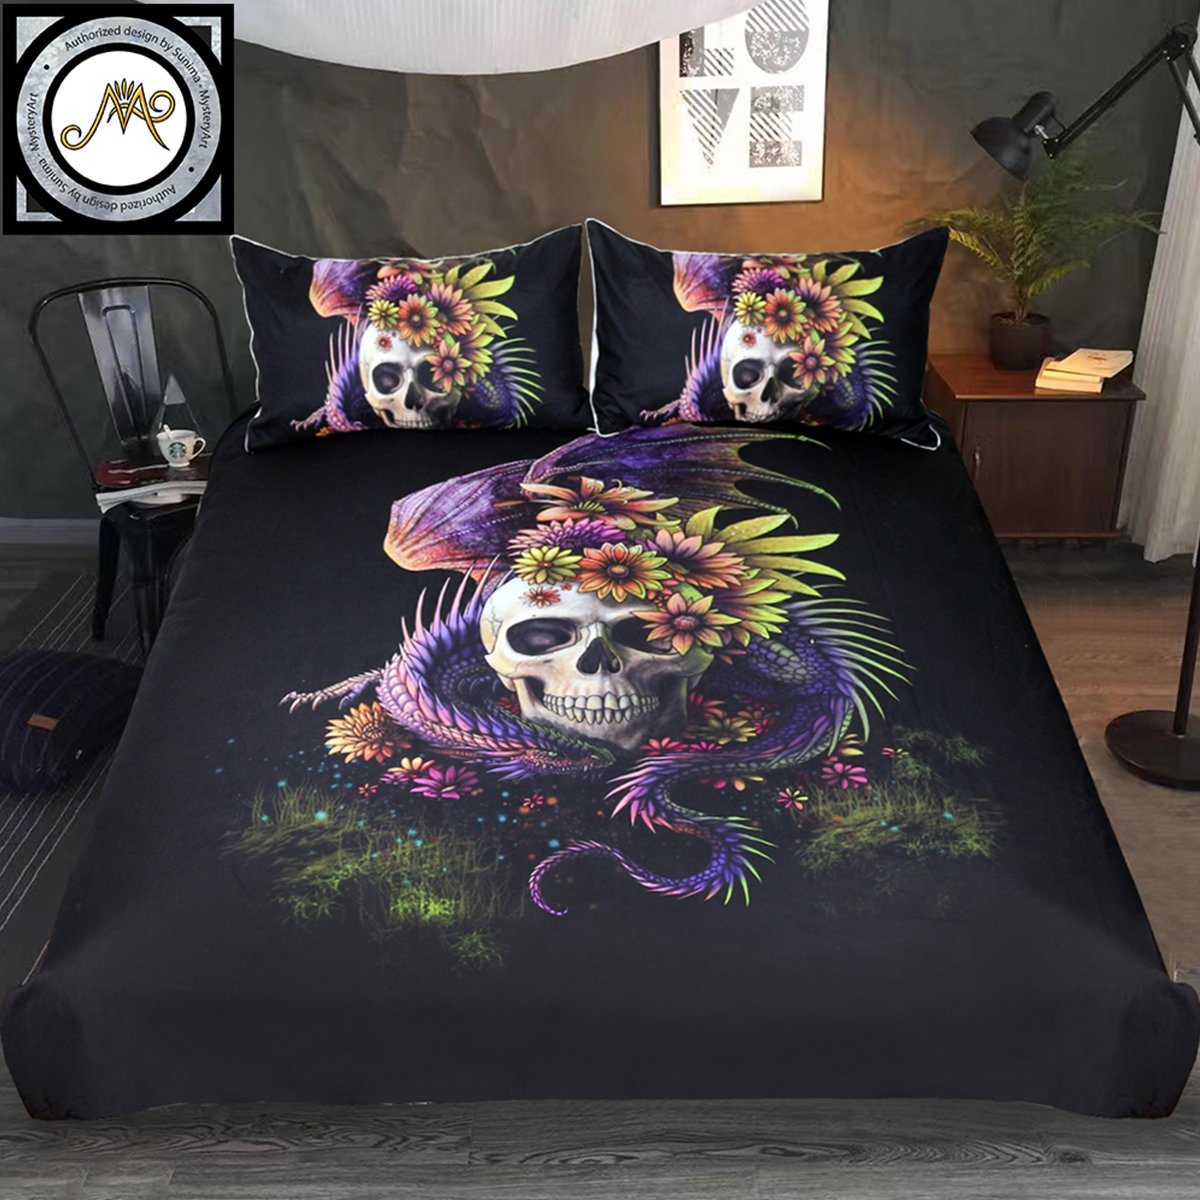 Sleepwish Flowery Skull by Sunima Bedding Set 3pcs Purple Black Dragon Skull Duvet Cover Gothic Bed Set for Men (Full) Youhao SQS012210002